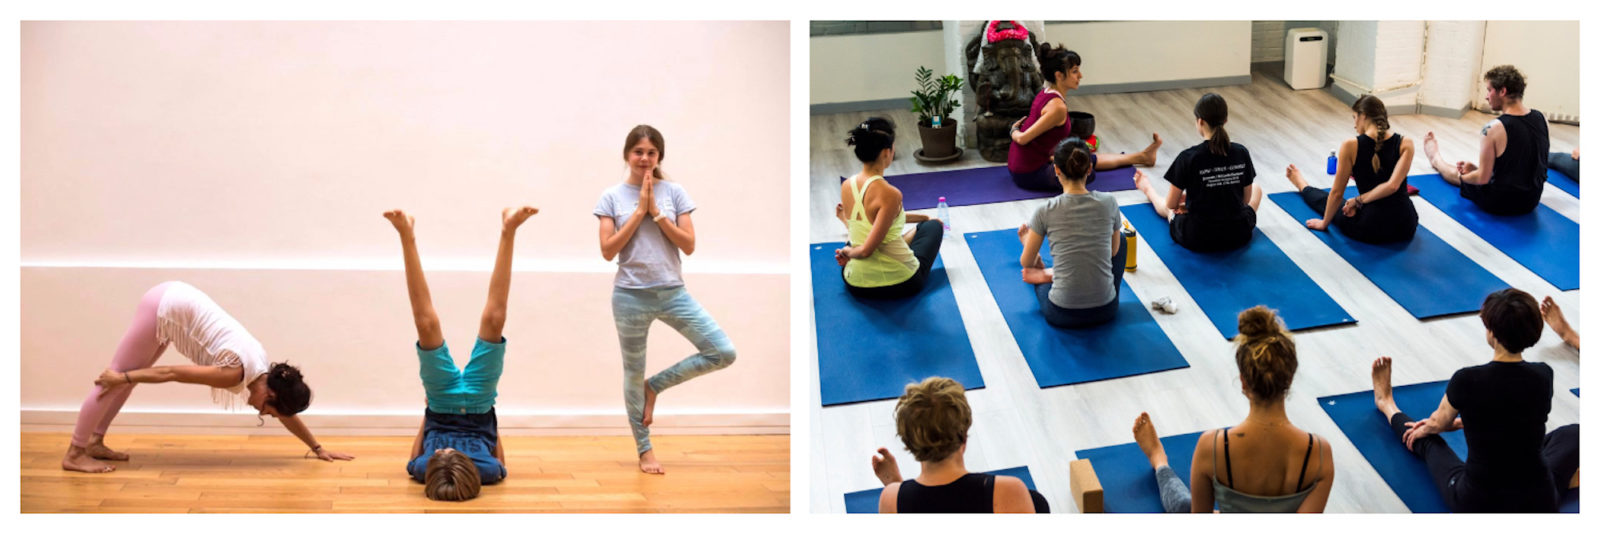 At kid-friendly Ashtanga Yoga studio in Paris, young yogis even have their own classes like these kids aged 6 to 11.